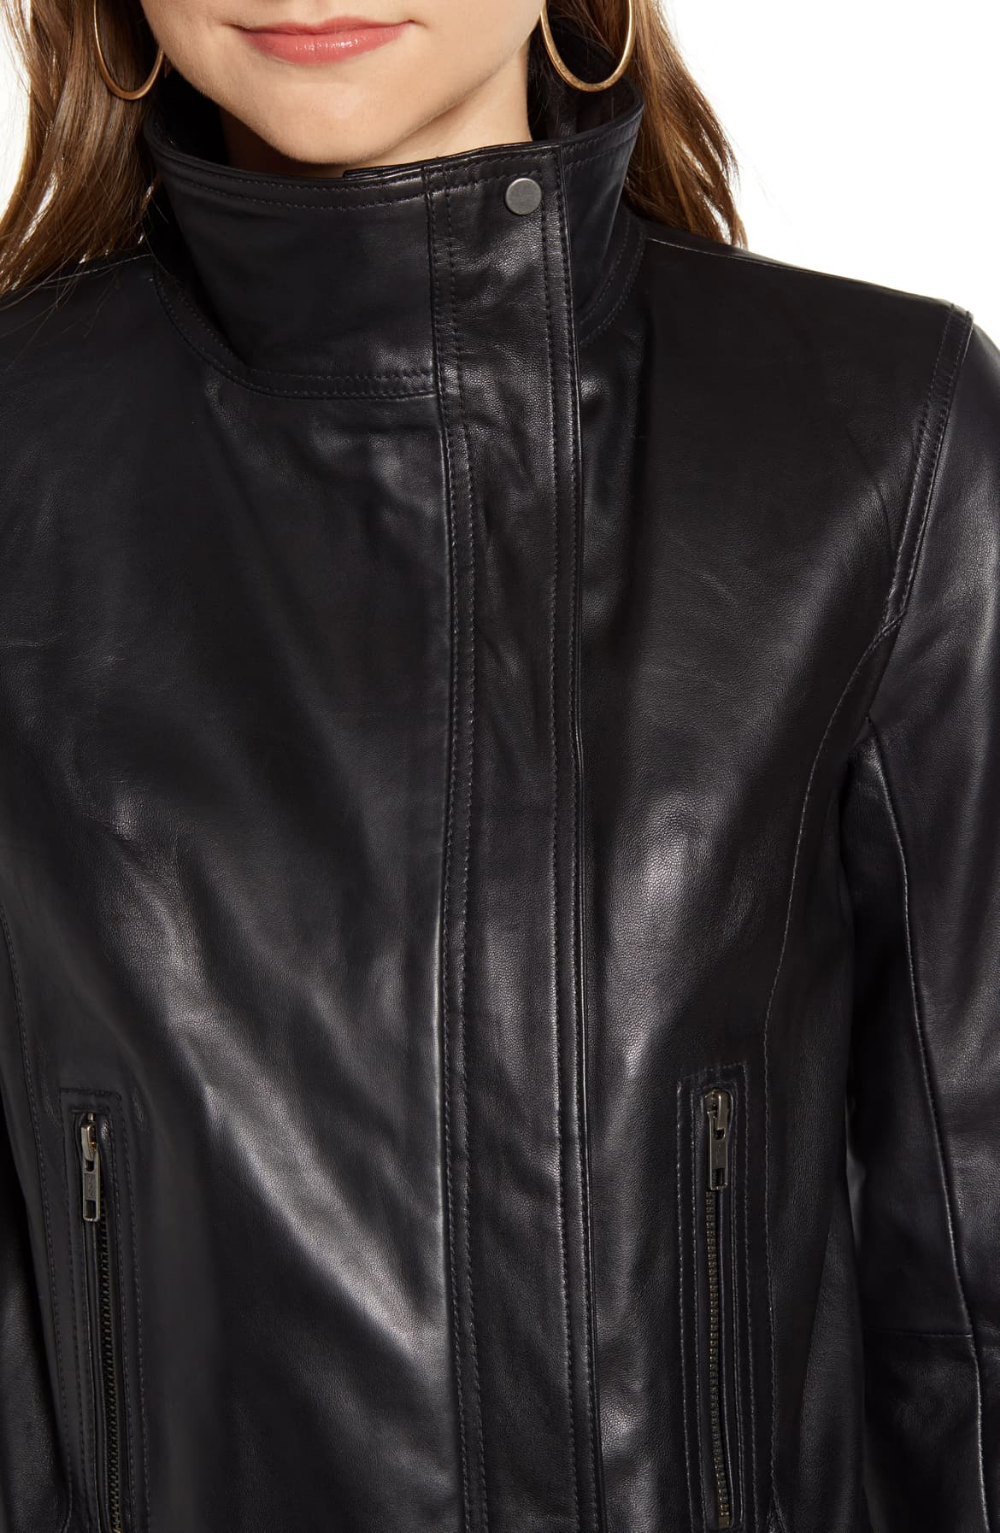 Chelsea 28 Leather Moto Jacket Nordstrom Leather Moto Jacket Moto Jacket Jackets [ 1533 x 1000 Pixel ]